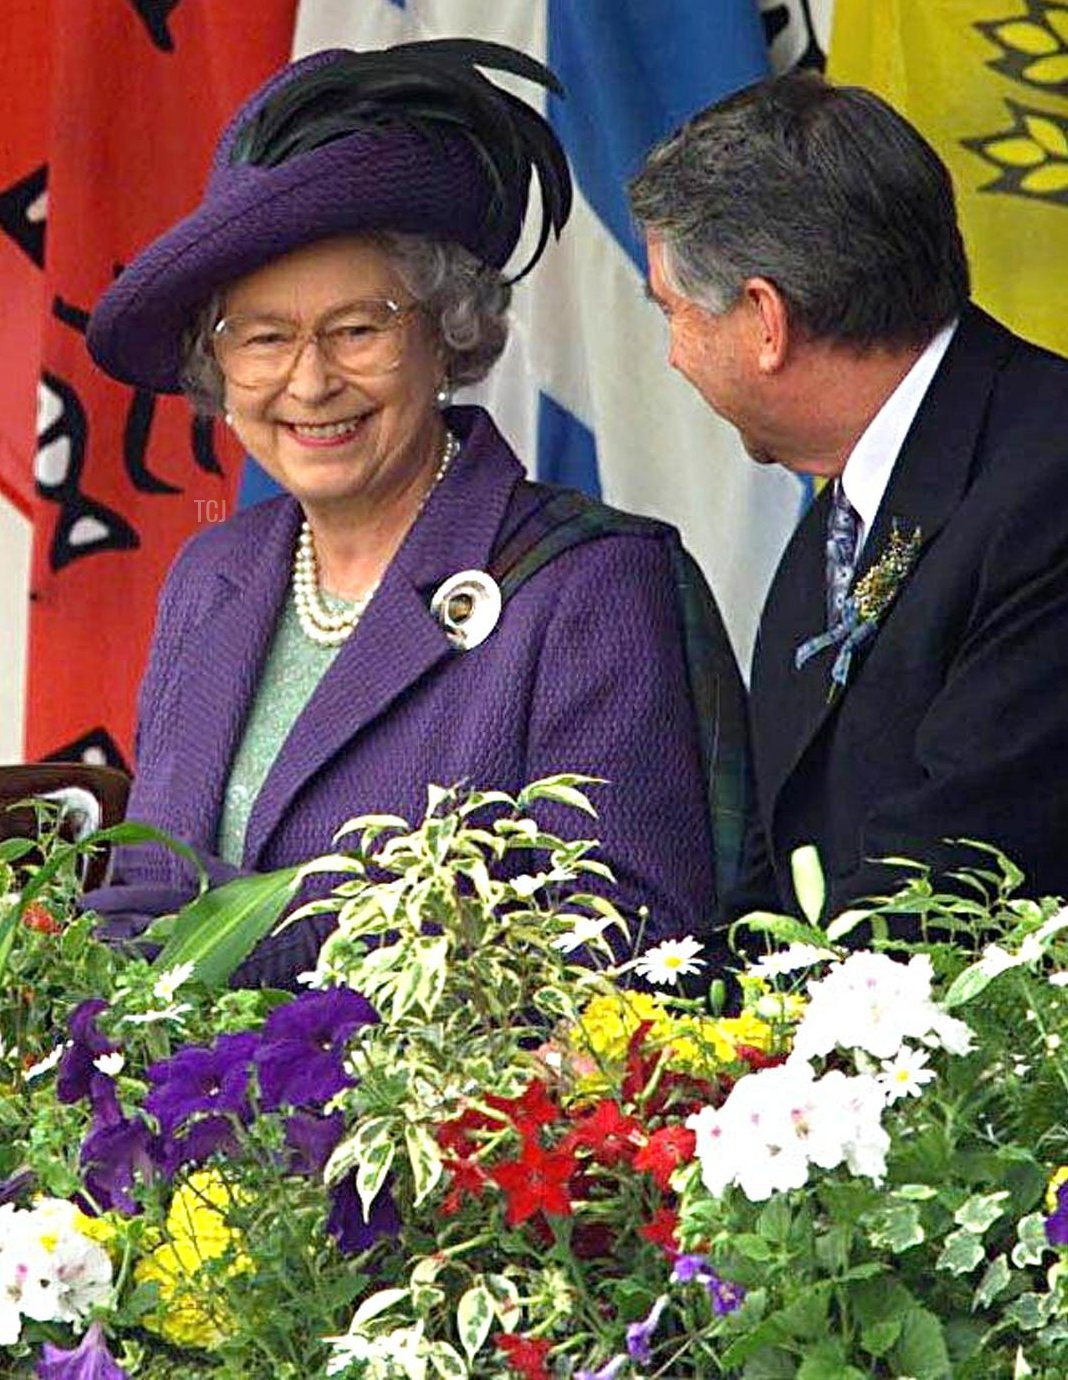 Britain's Queen Elizabeth II smiles with Presiding officer Sir David Steel after the close of the ceremony for the new Scottish Parliament in Edinburgh 01 July 1999